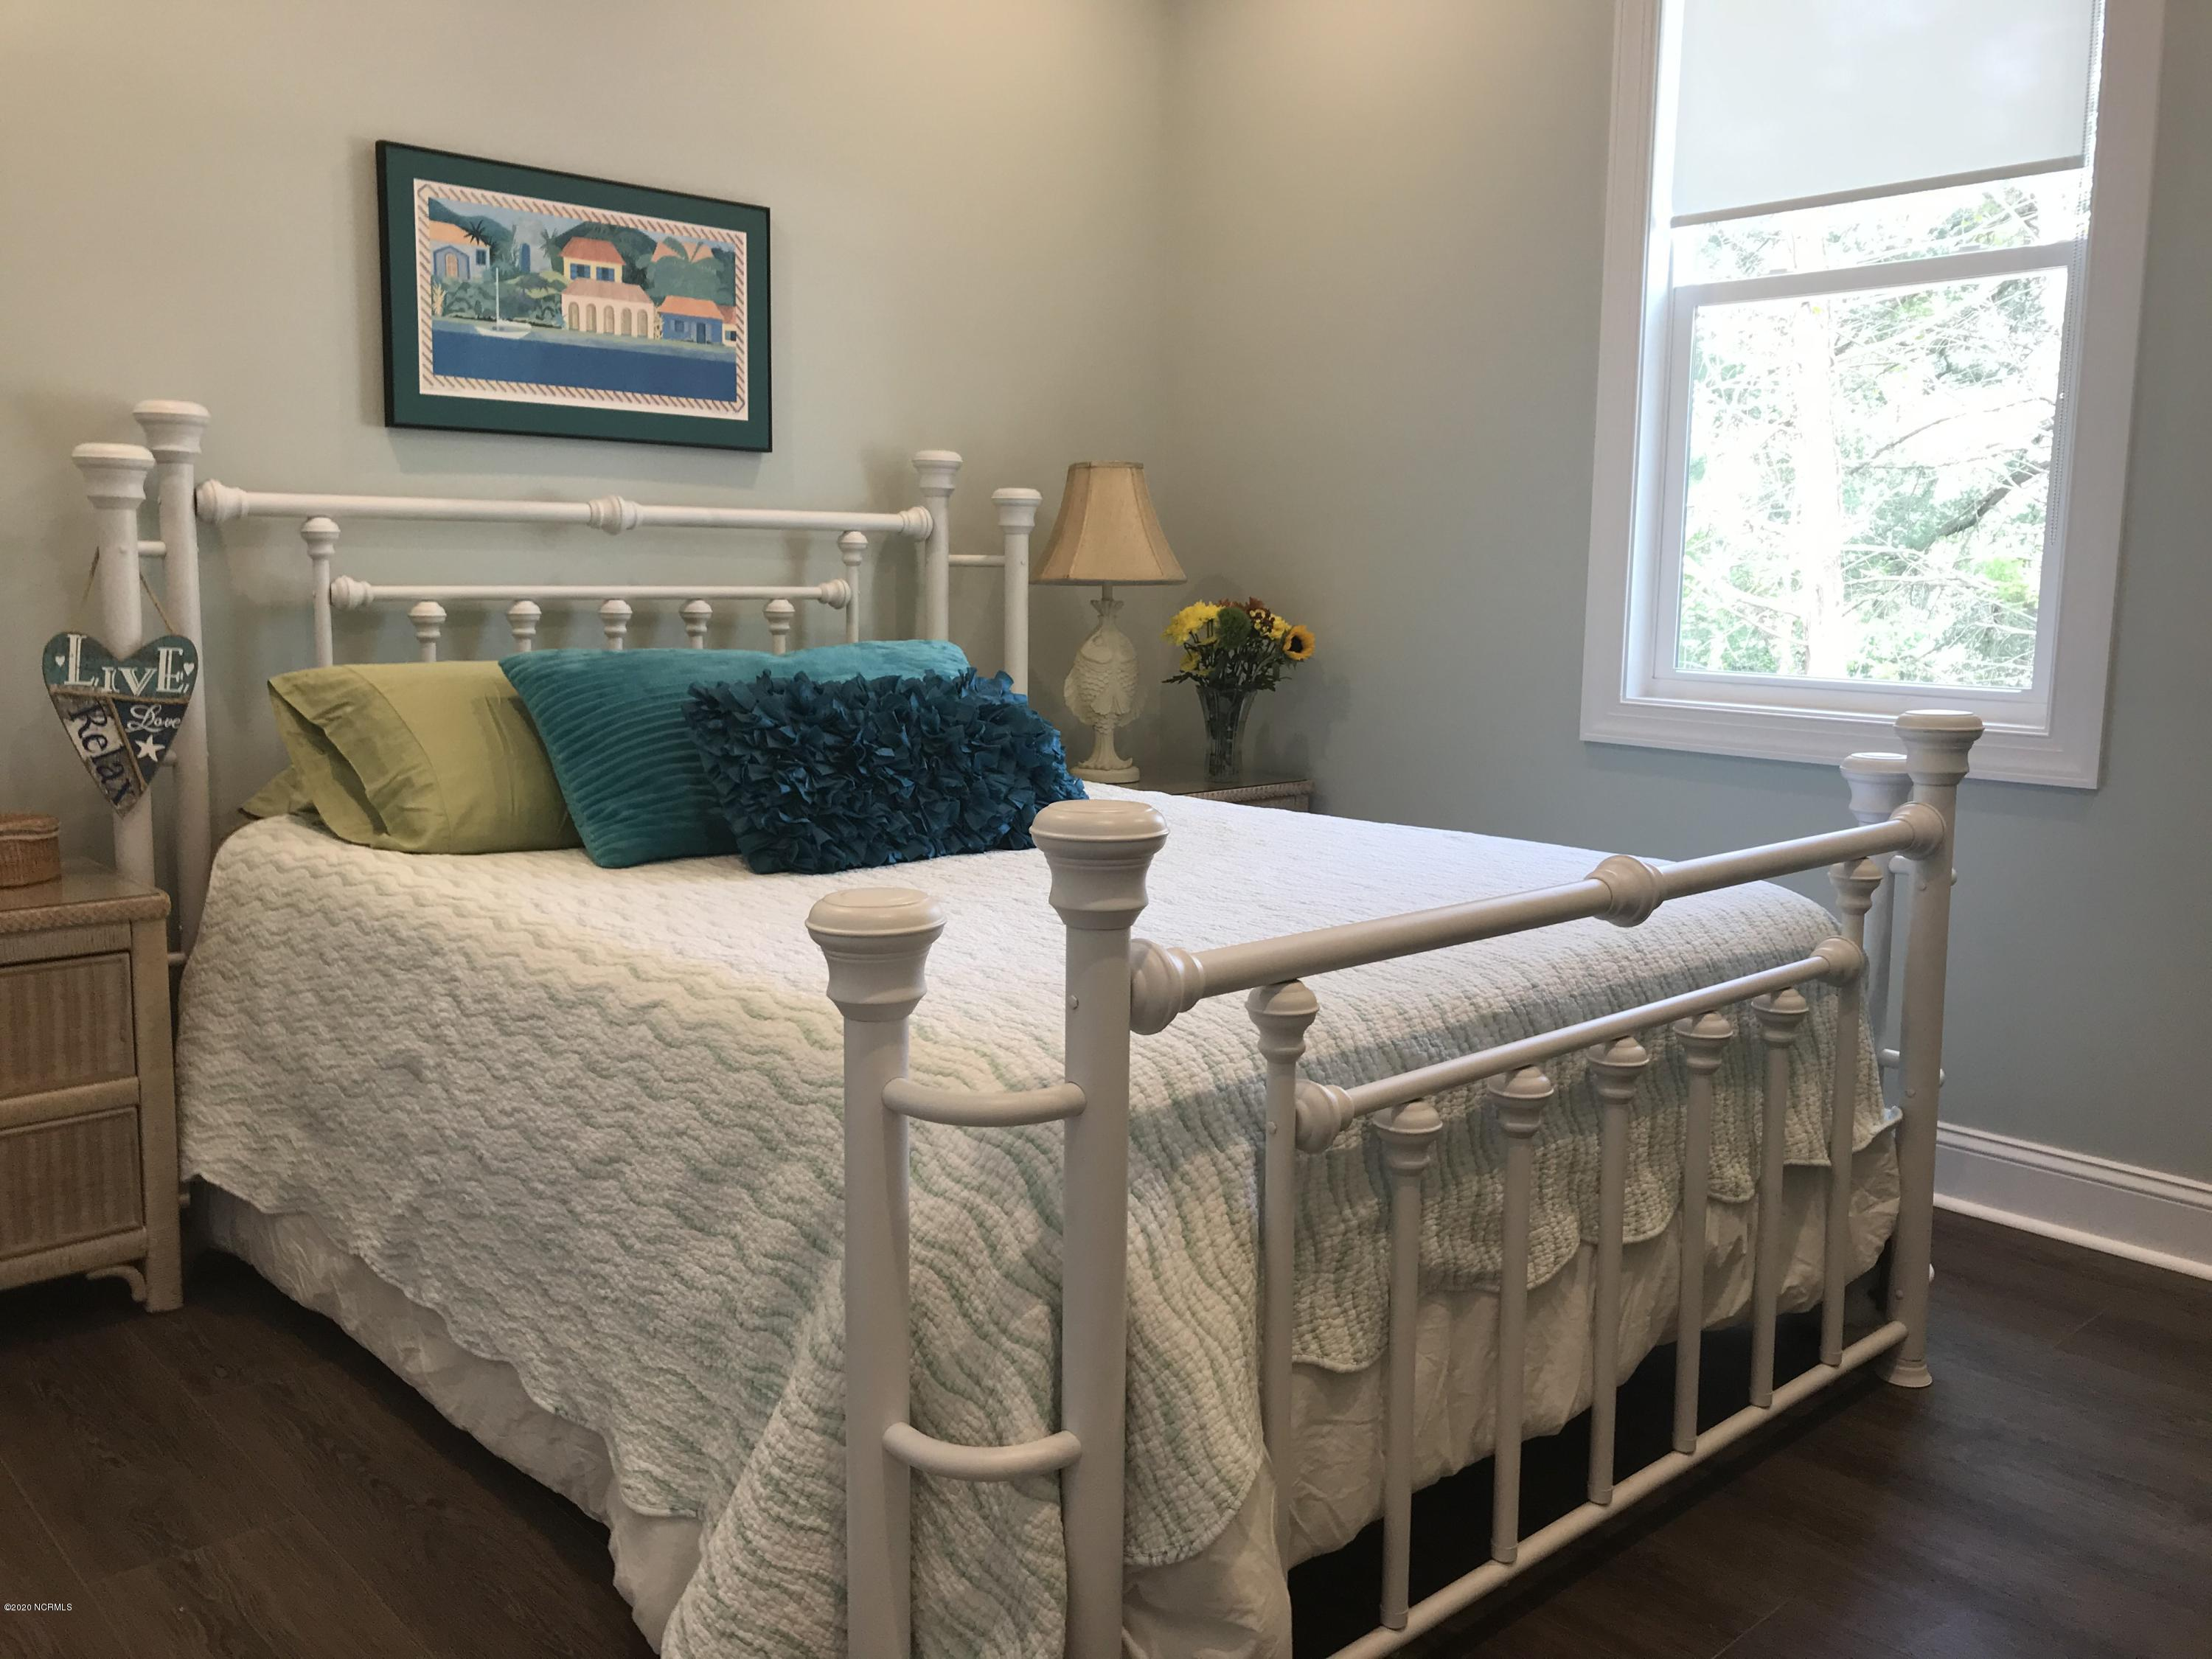 108 Evergreen Lane, Pine Knoll Shores, North Carolina 28512, 3 Bedrooms Bedrooms, 5 Rooms Rooms,2 BathroomsBathrooms,Single family residence,For sale,Evergreen,100190228